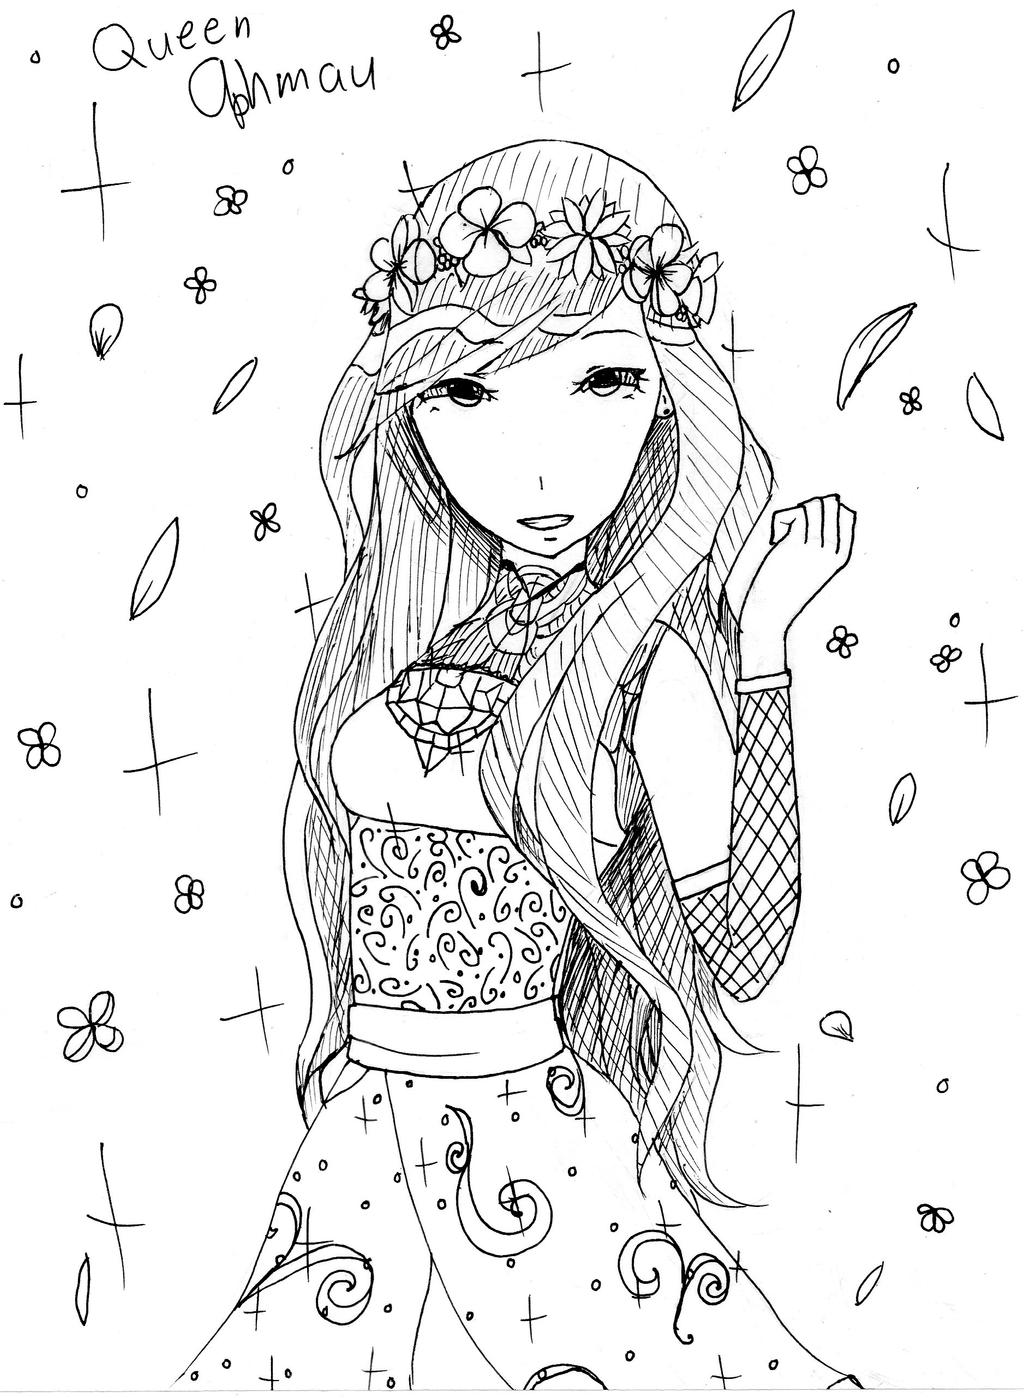 aphmau coloring page queen aphmau by neonnyagic on deviantart